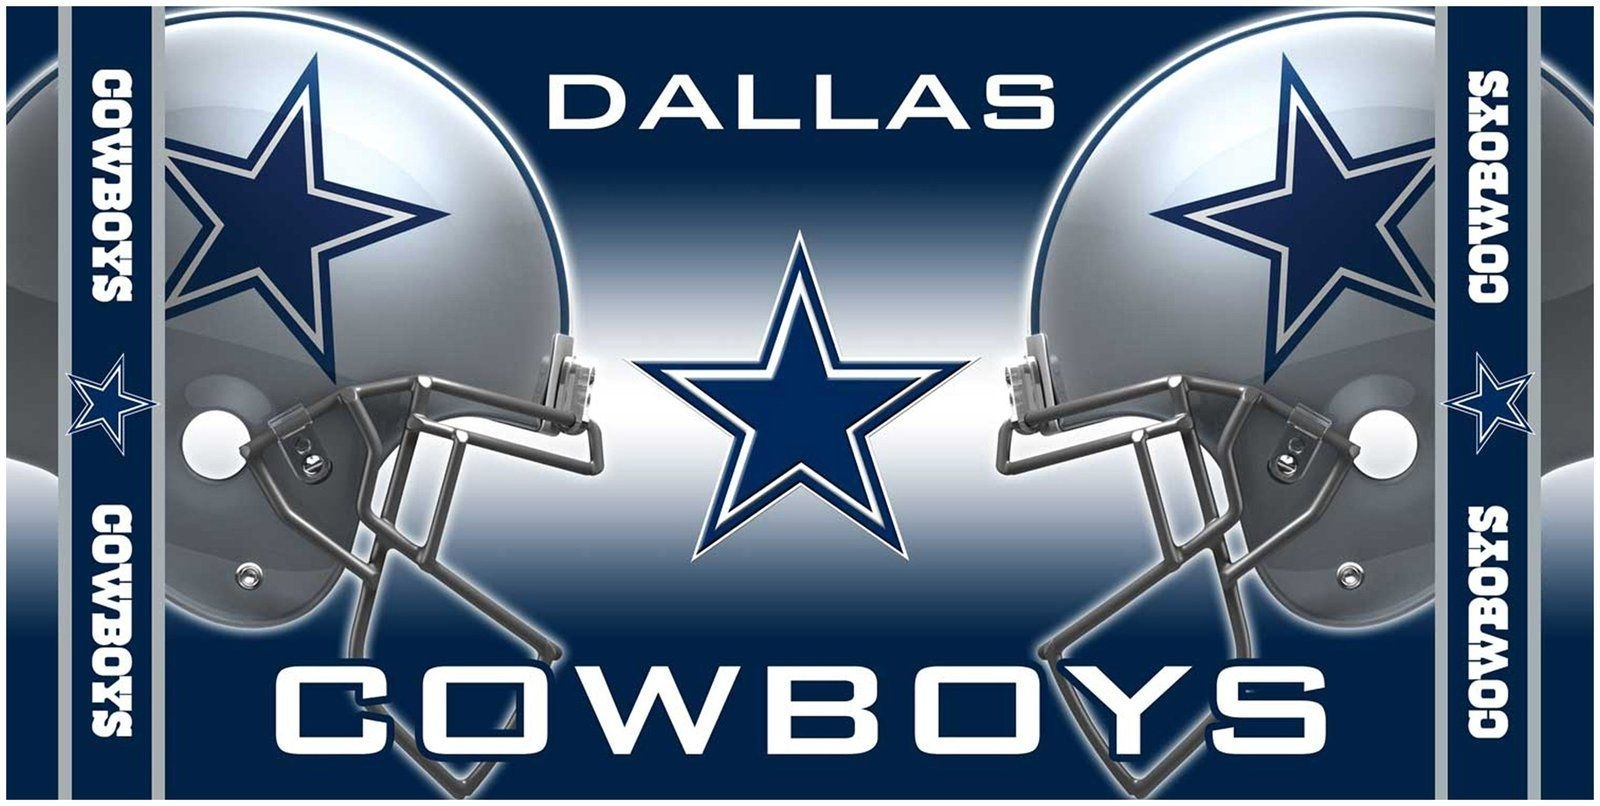 download free dallas cowboys wallpapers group | hd wallpapers